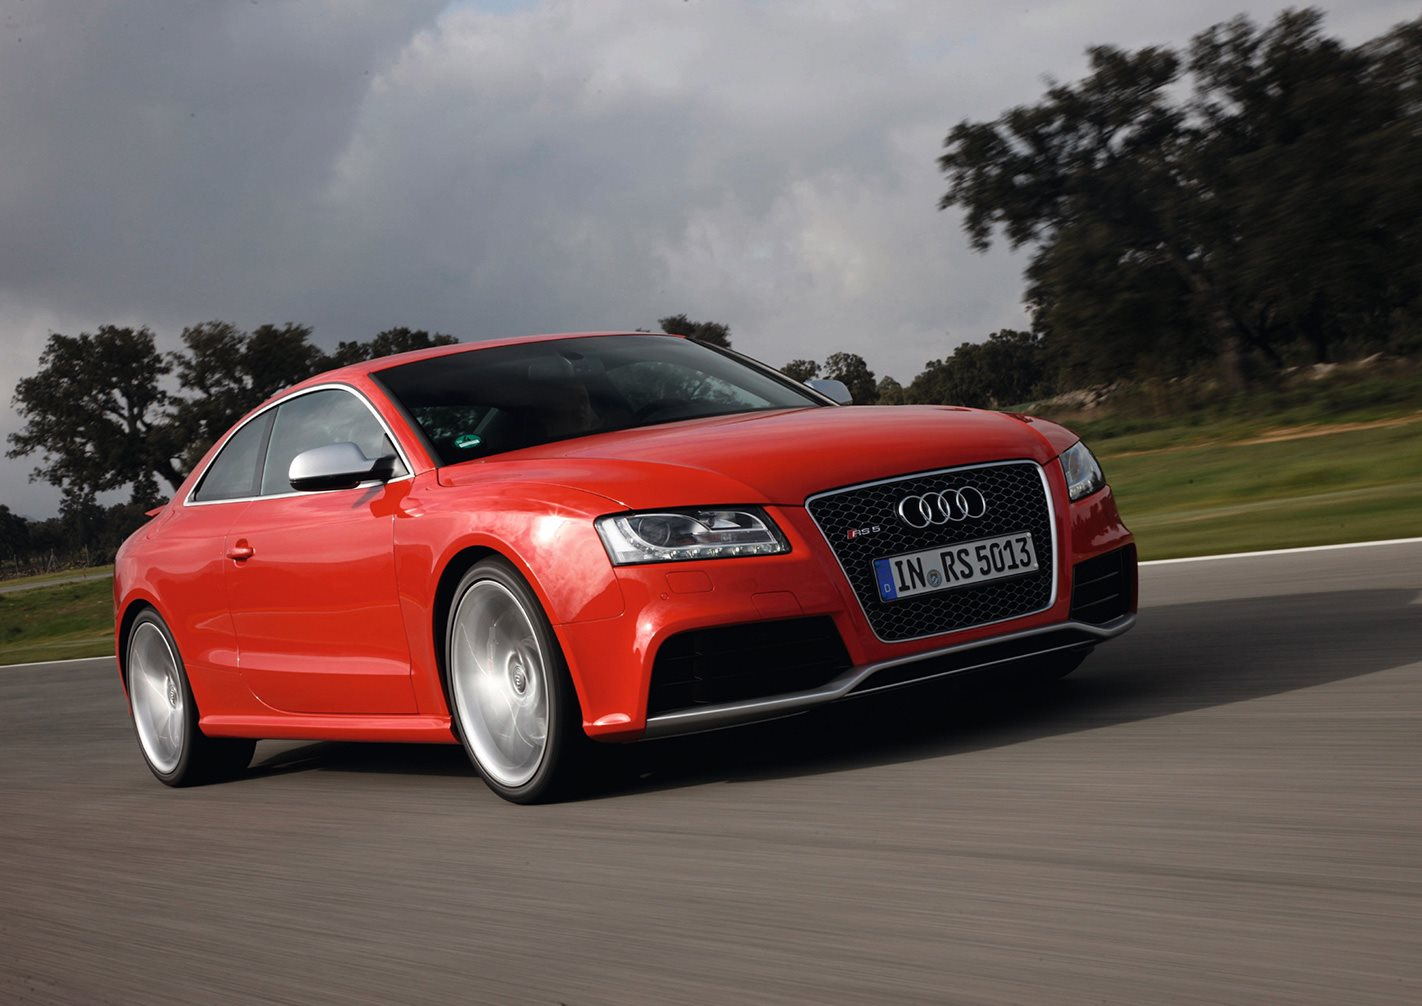 2010 Audi RS5 front